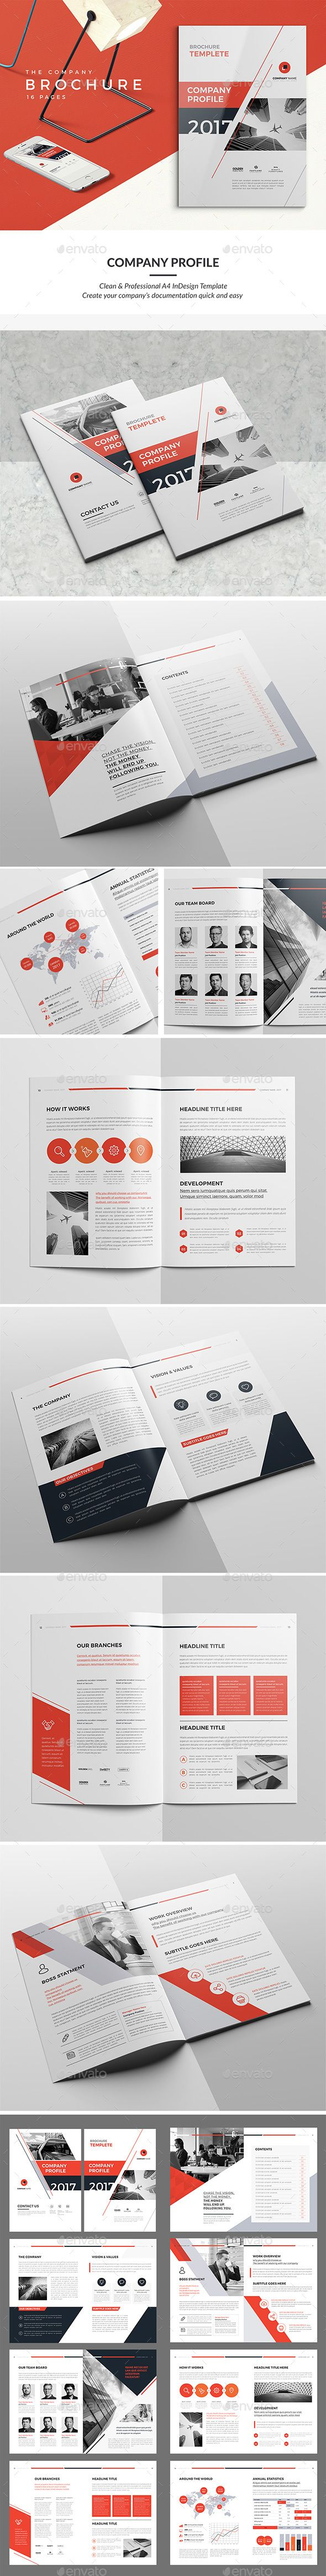 Company Profile Brochure 2017 Template Indesign Indd Company